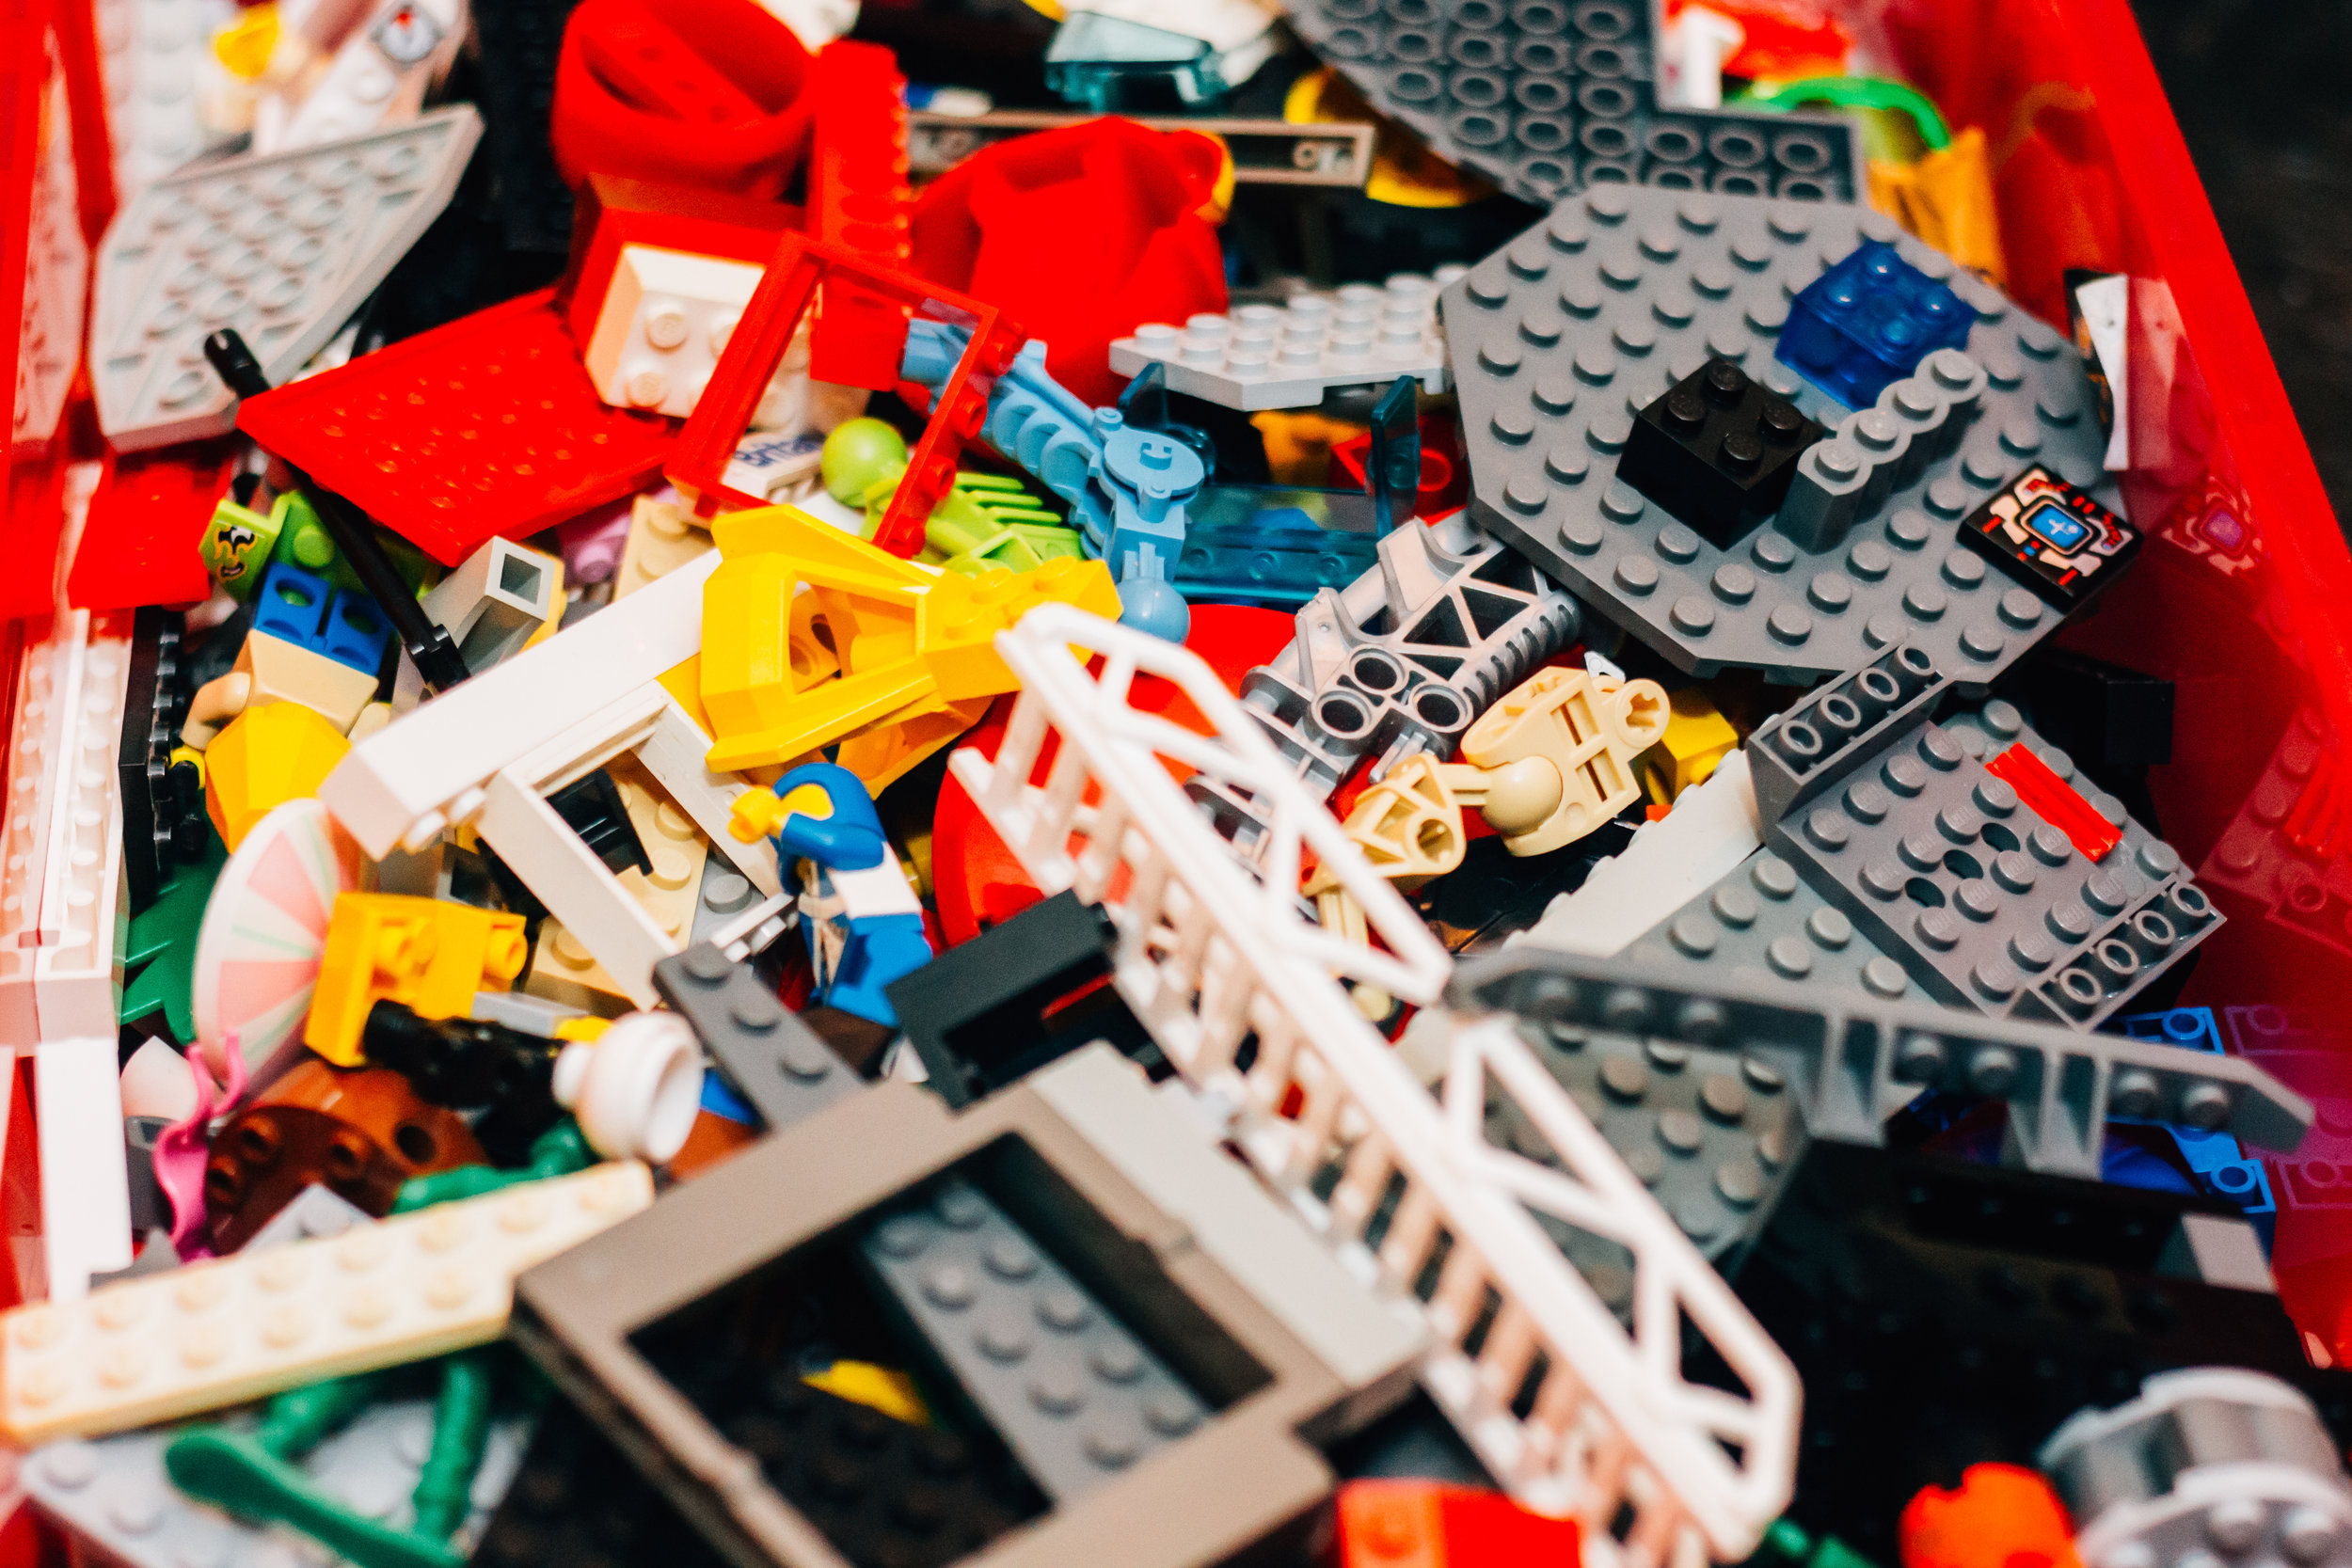 lEGO CLUB - Free creative sessions for kids, mams and dads to come and play. Absolutely free! Come and make an epic tower, car or whatever takes your fancy.